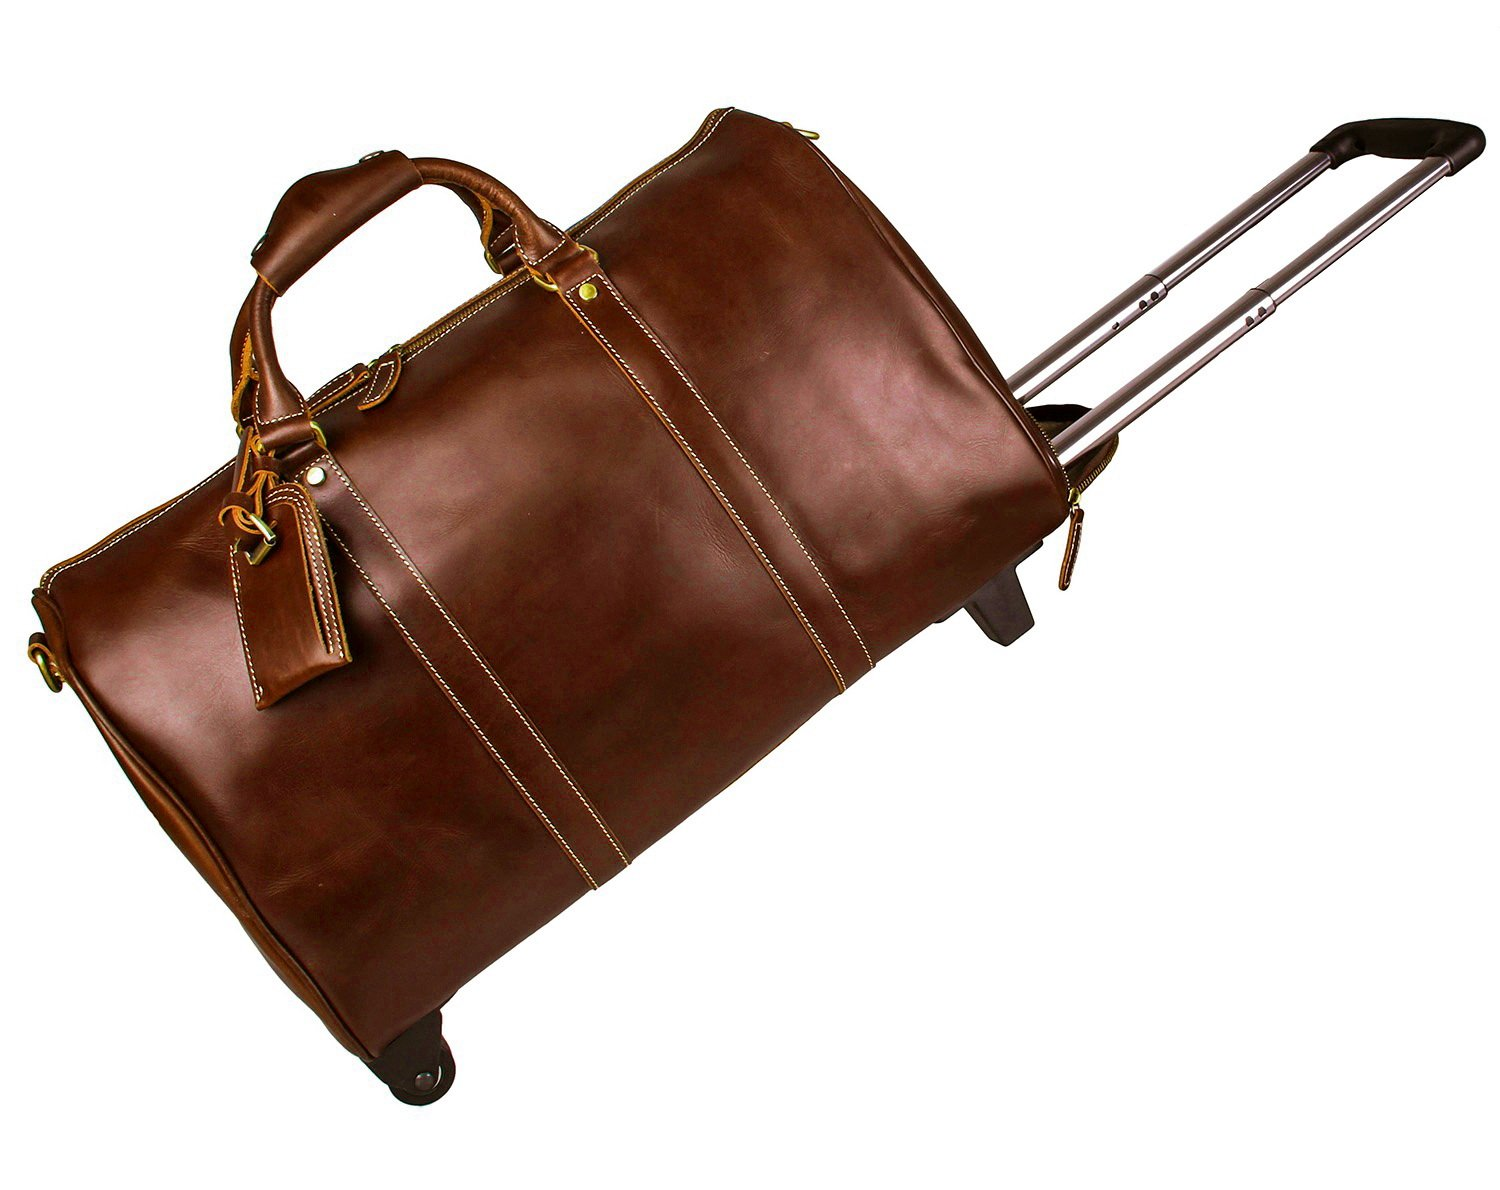 BAIGIO Leather Travel Duffle Bag with Wheels Carry-on Luggage Weekend Duffel Bag (Brown)